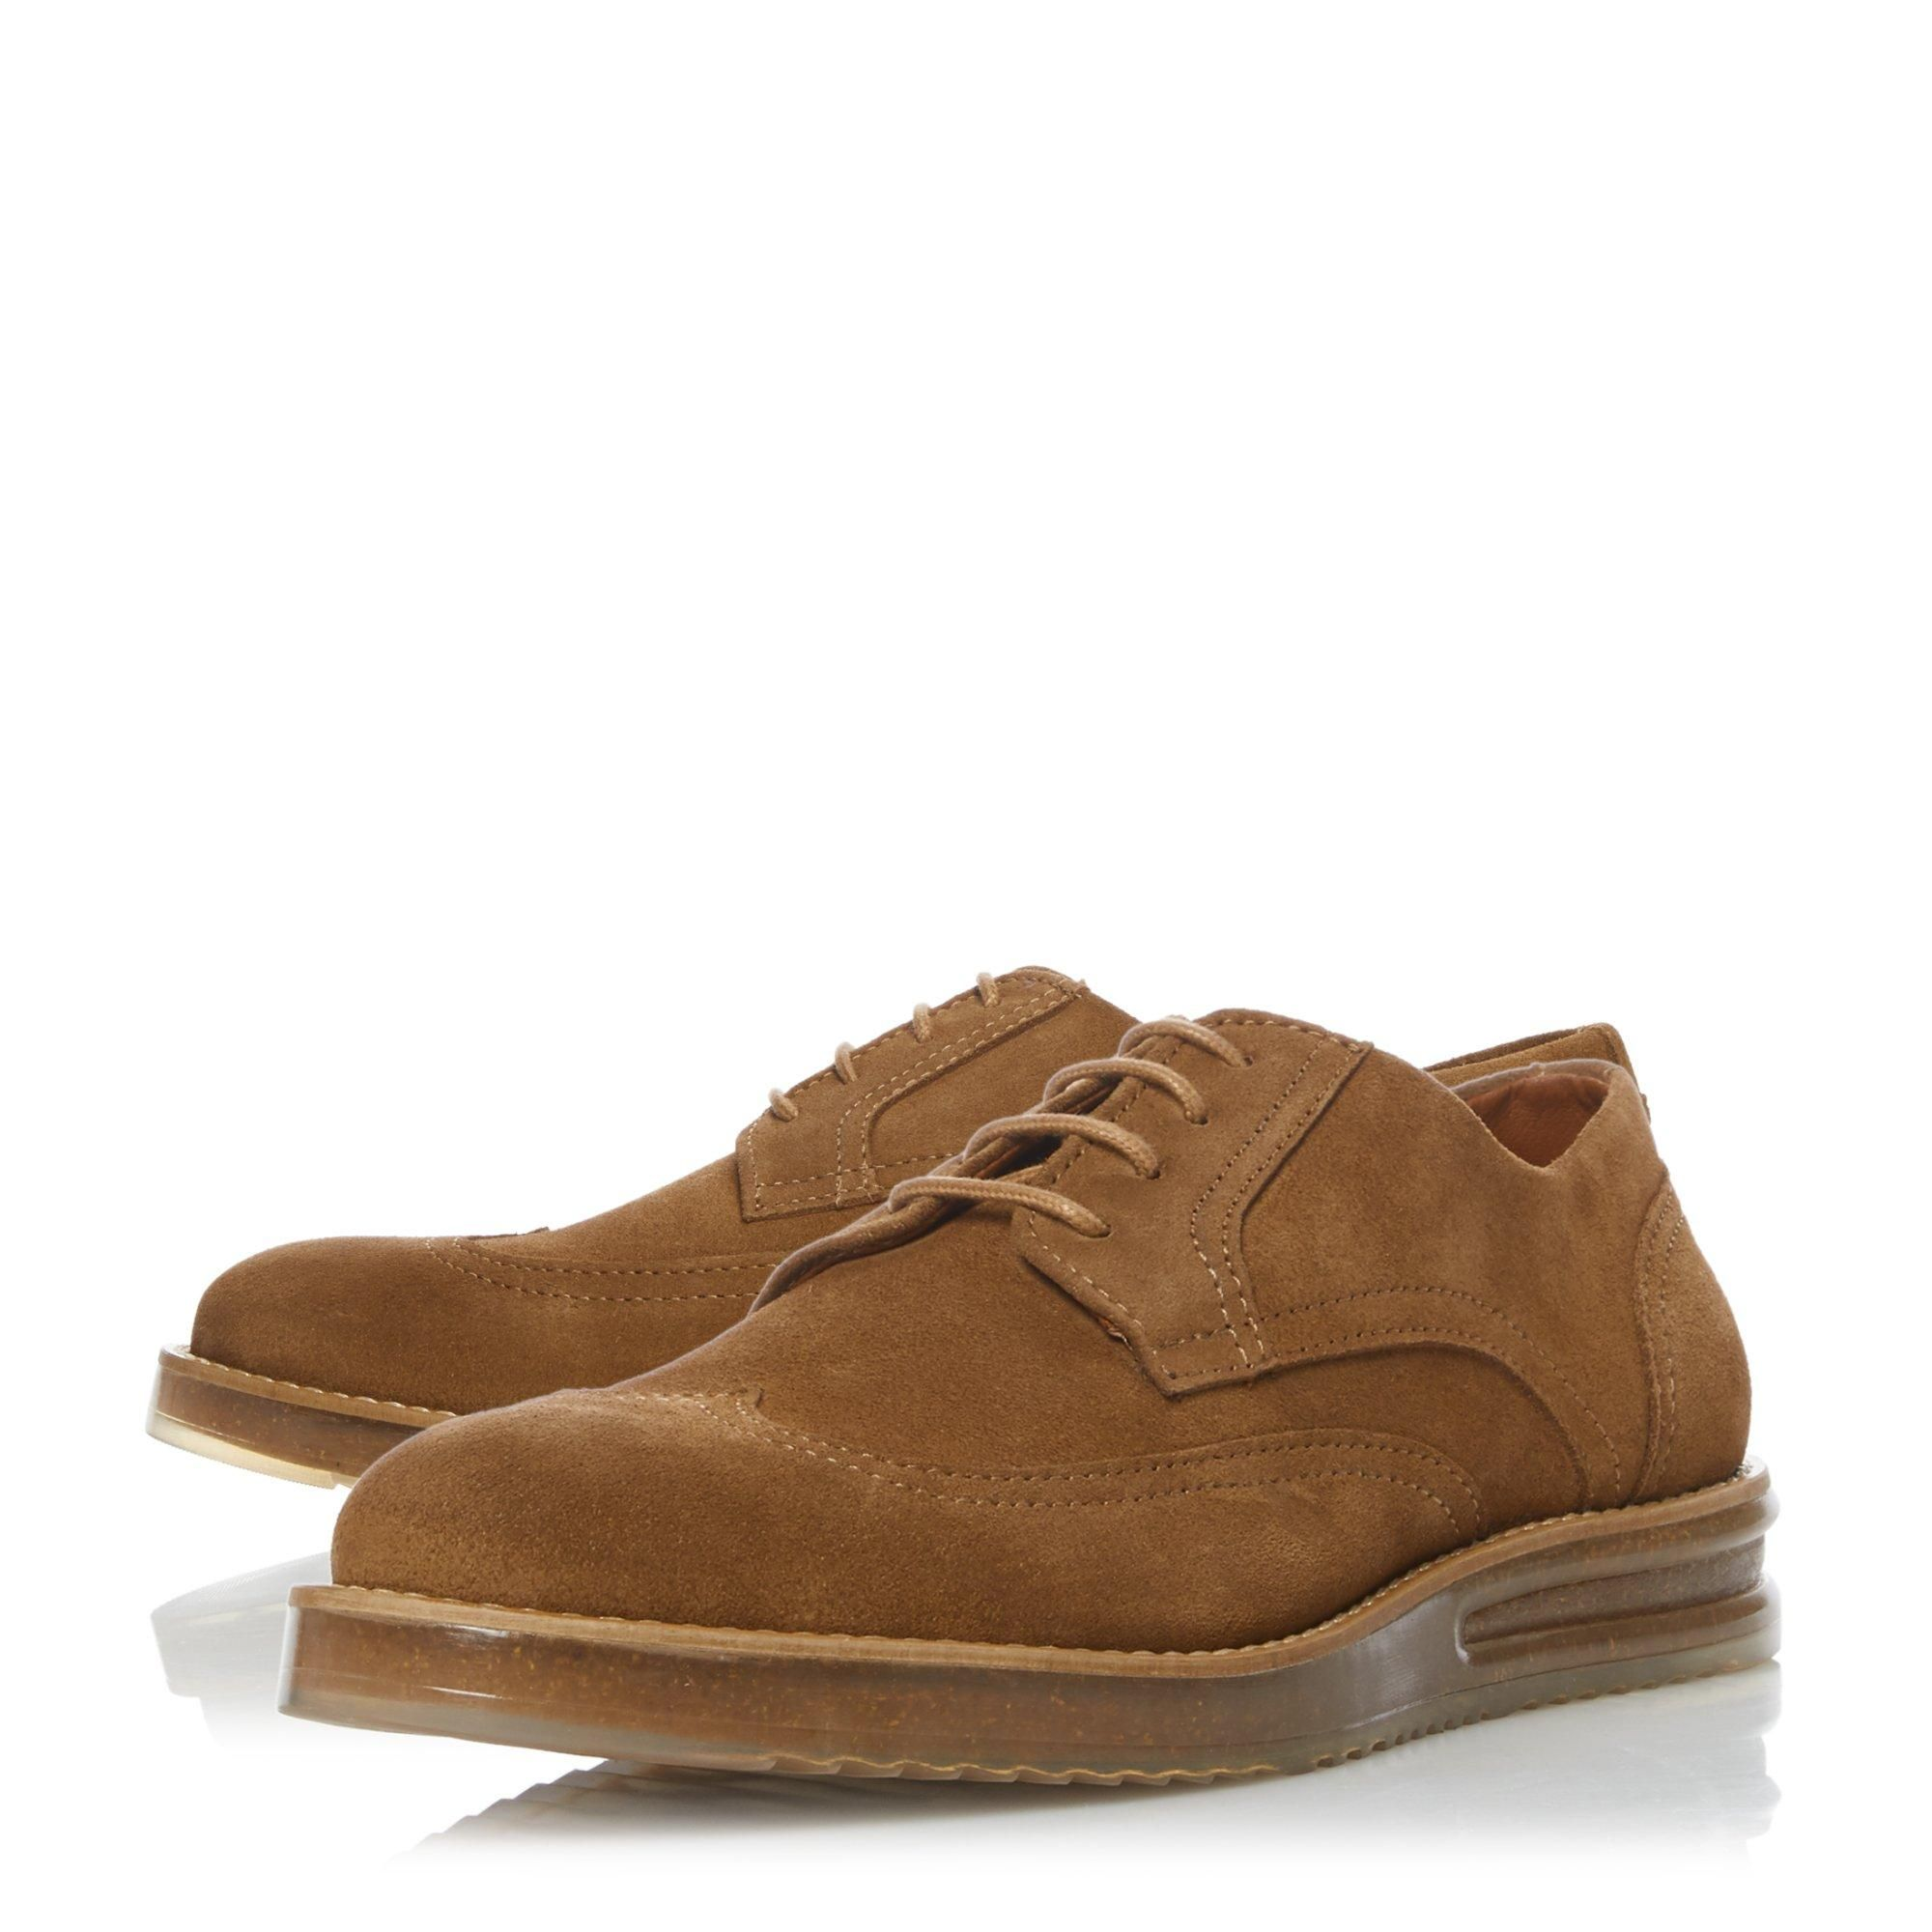 Dune Mens BOOOM Casual Cork Wedge Lace Up Brogues